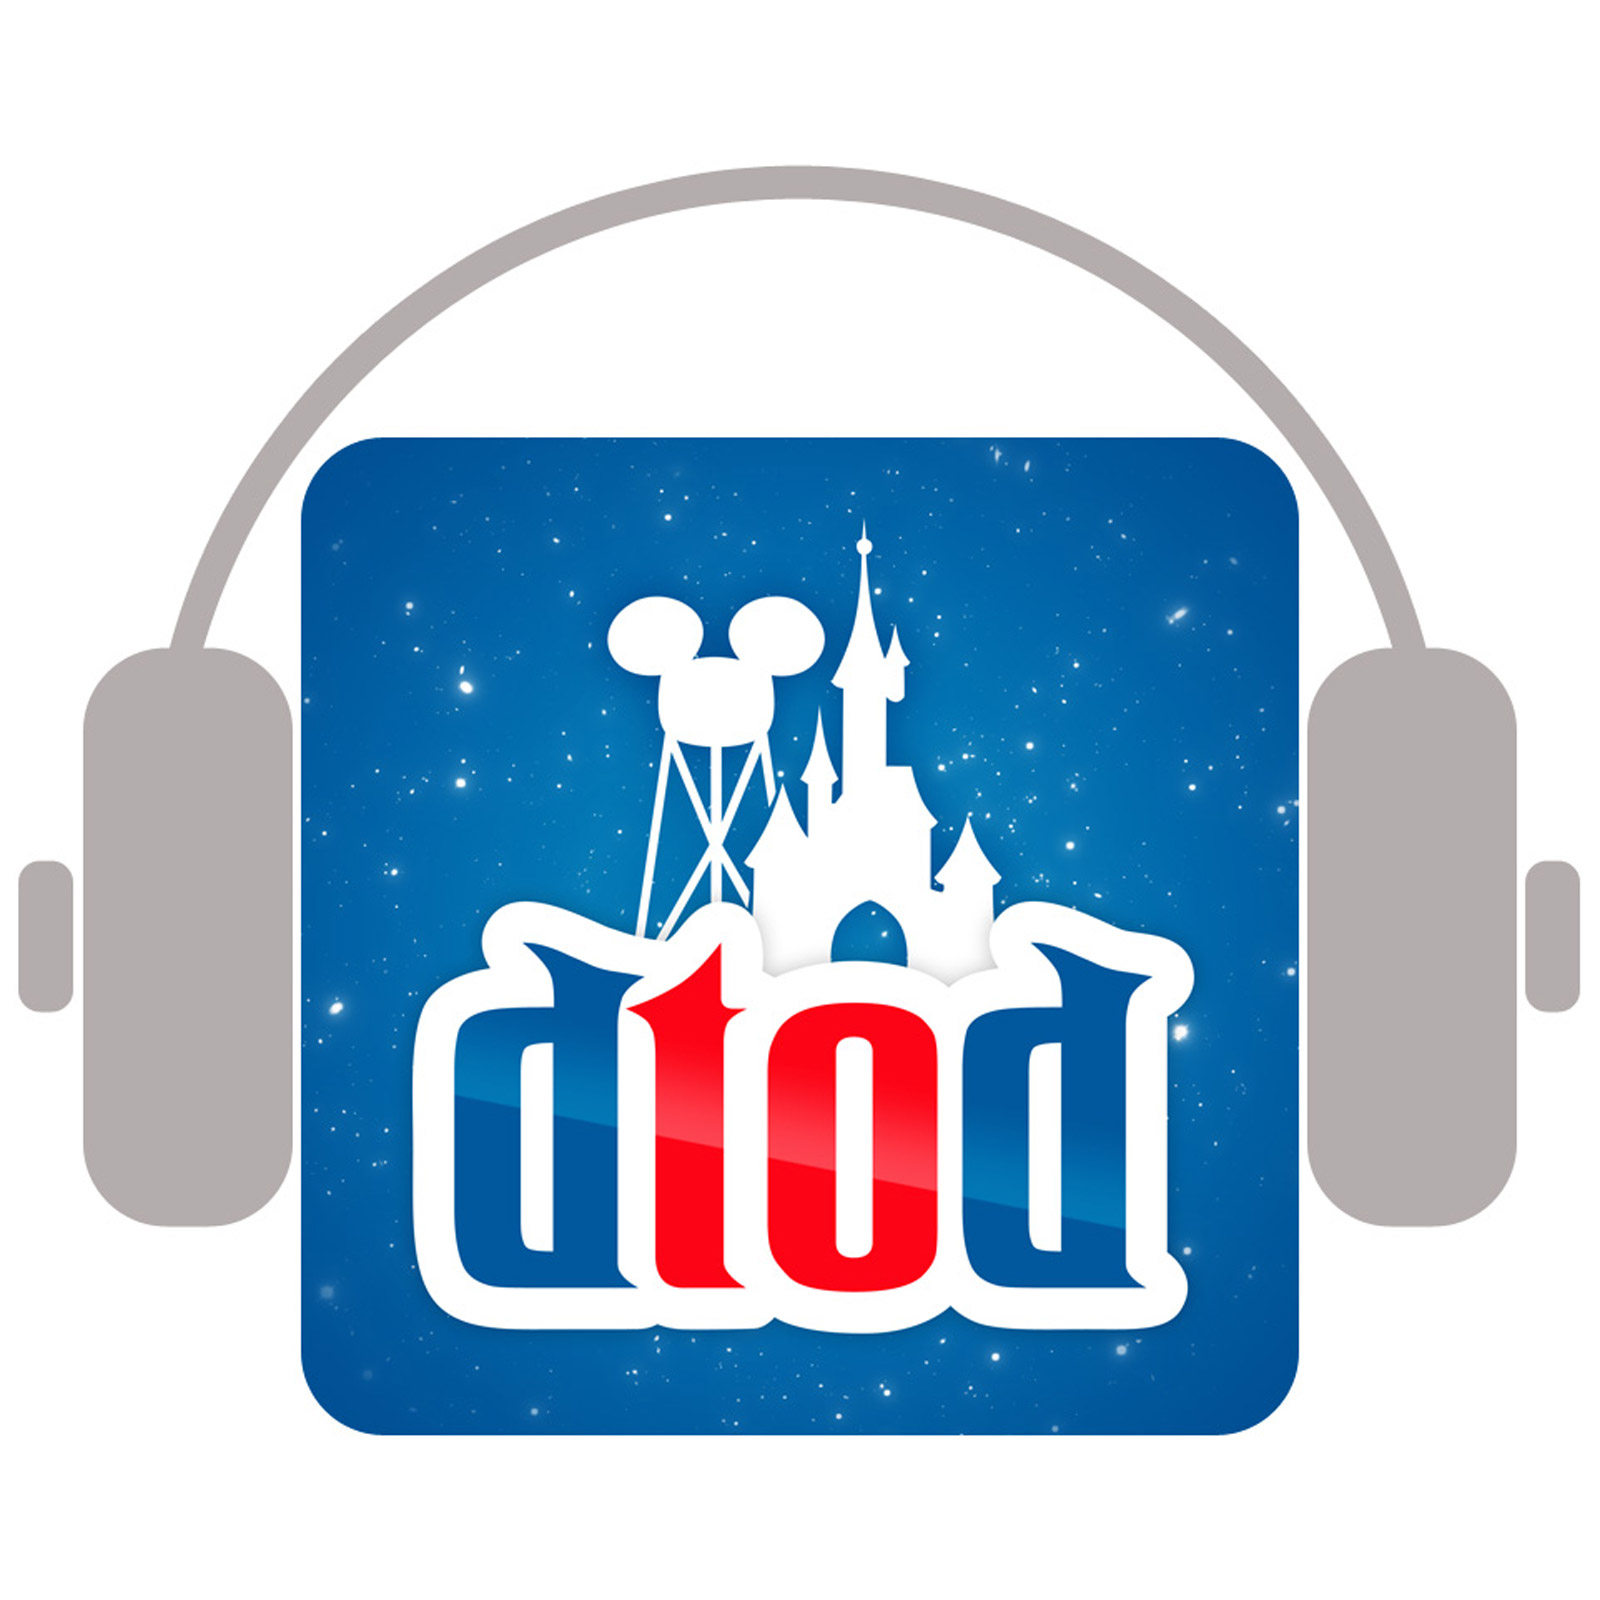 Episode 52: Ask Us Anything